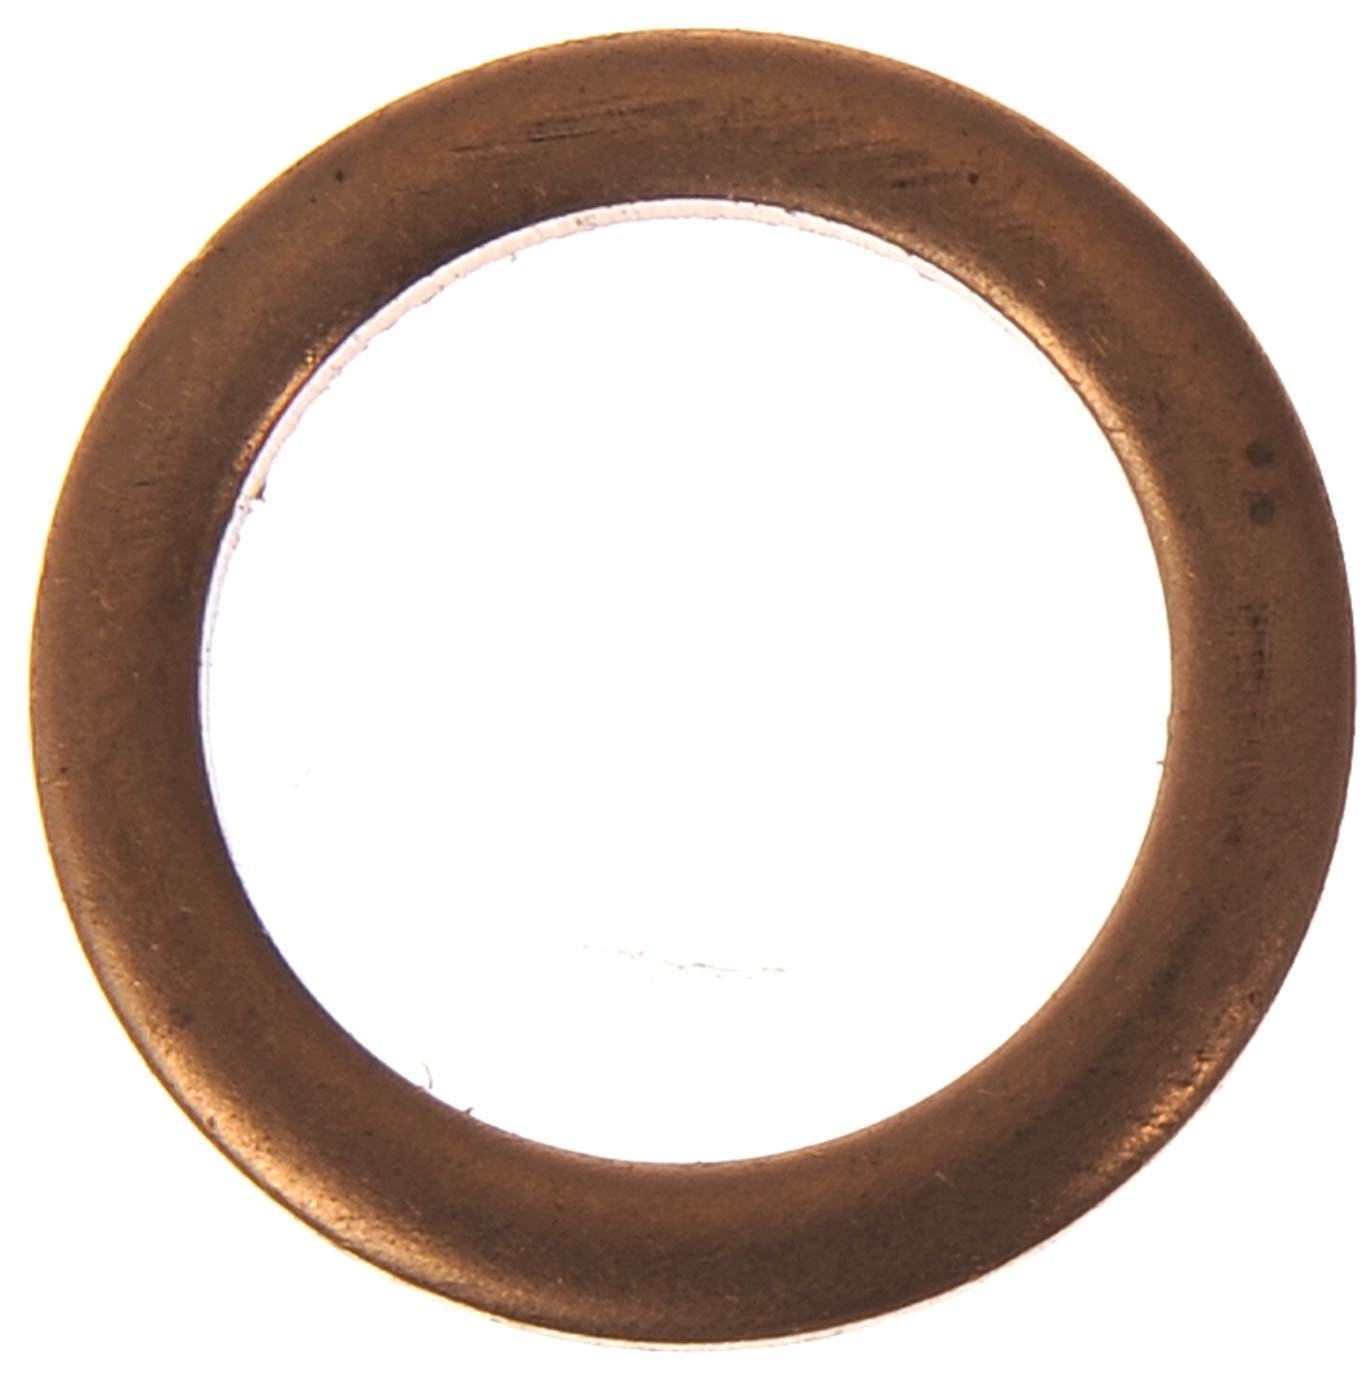 DORMAN - AUTOGRADE - Engine Oil Drain Plug Gasket - DOC 095-010